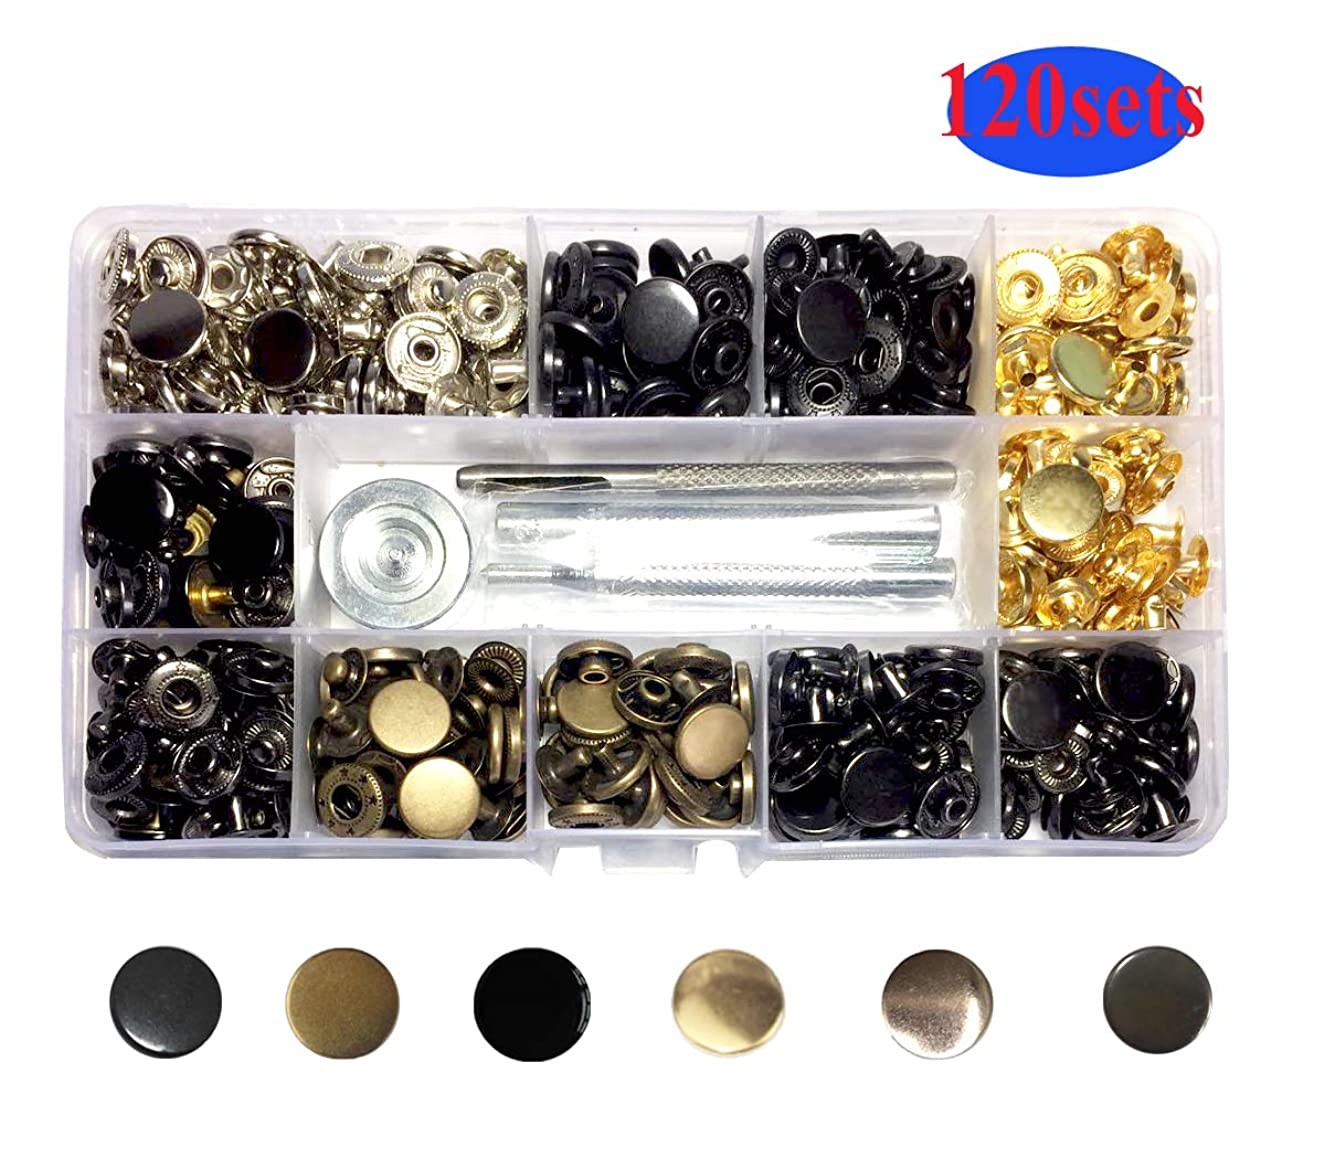 120 Sets Snap Fasteners Kit,6 Color Clothing Snaps Kit ,12.5mm Metal Snap Buttons Press Studs with 4 Pieces Fixing Tools for Pillows case,Thin Leather, Jacket, Jeans Wear, Bracelet, Bags